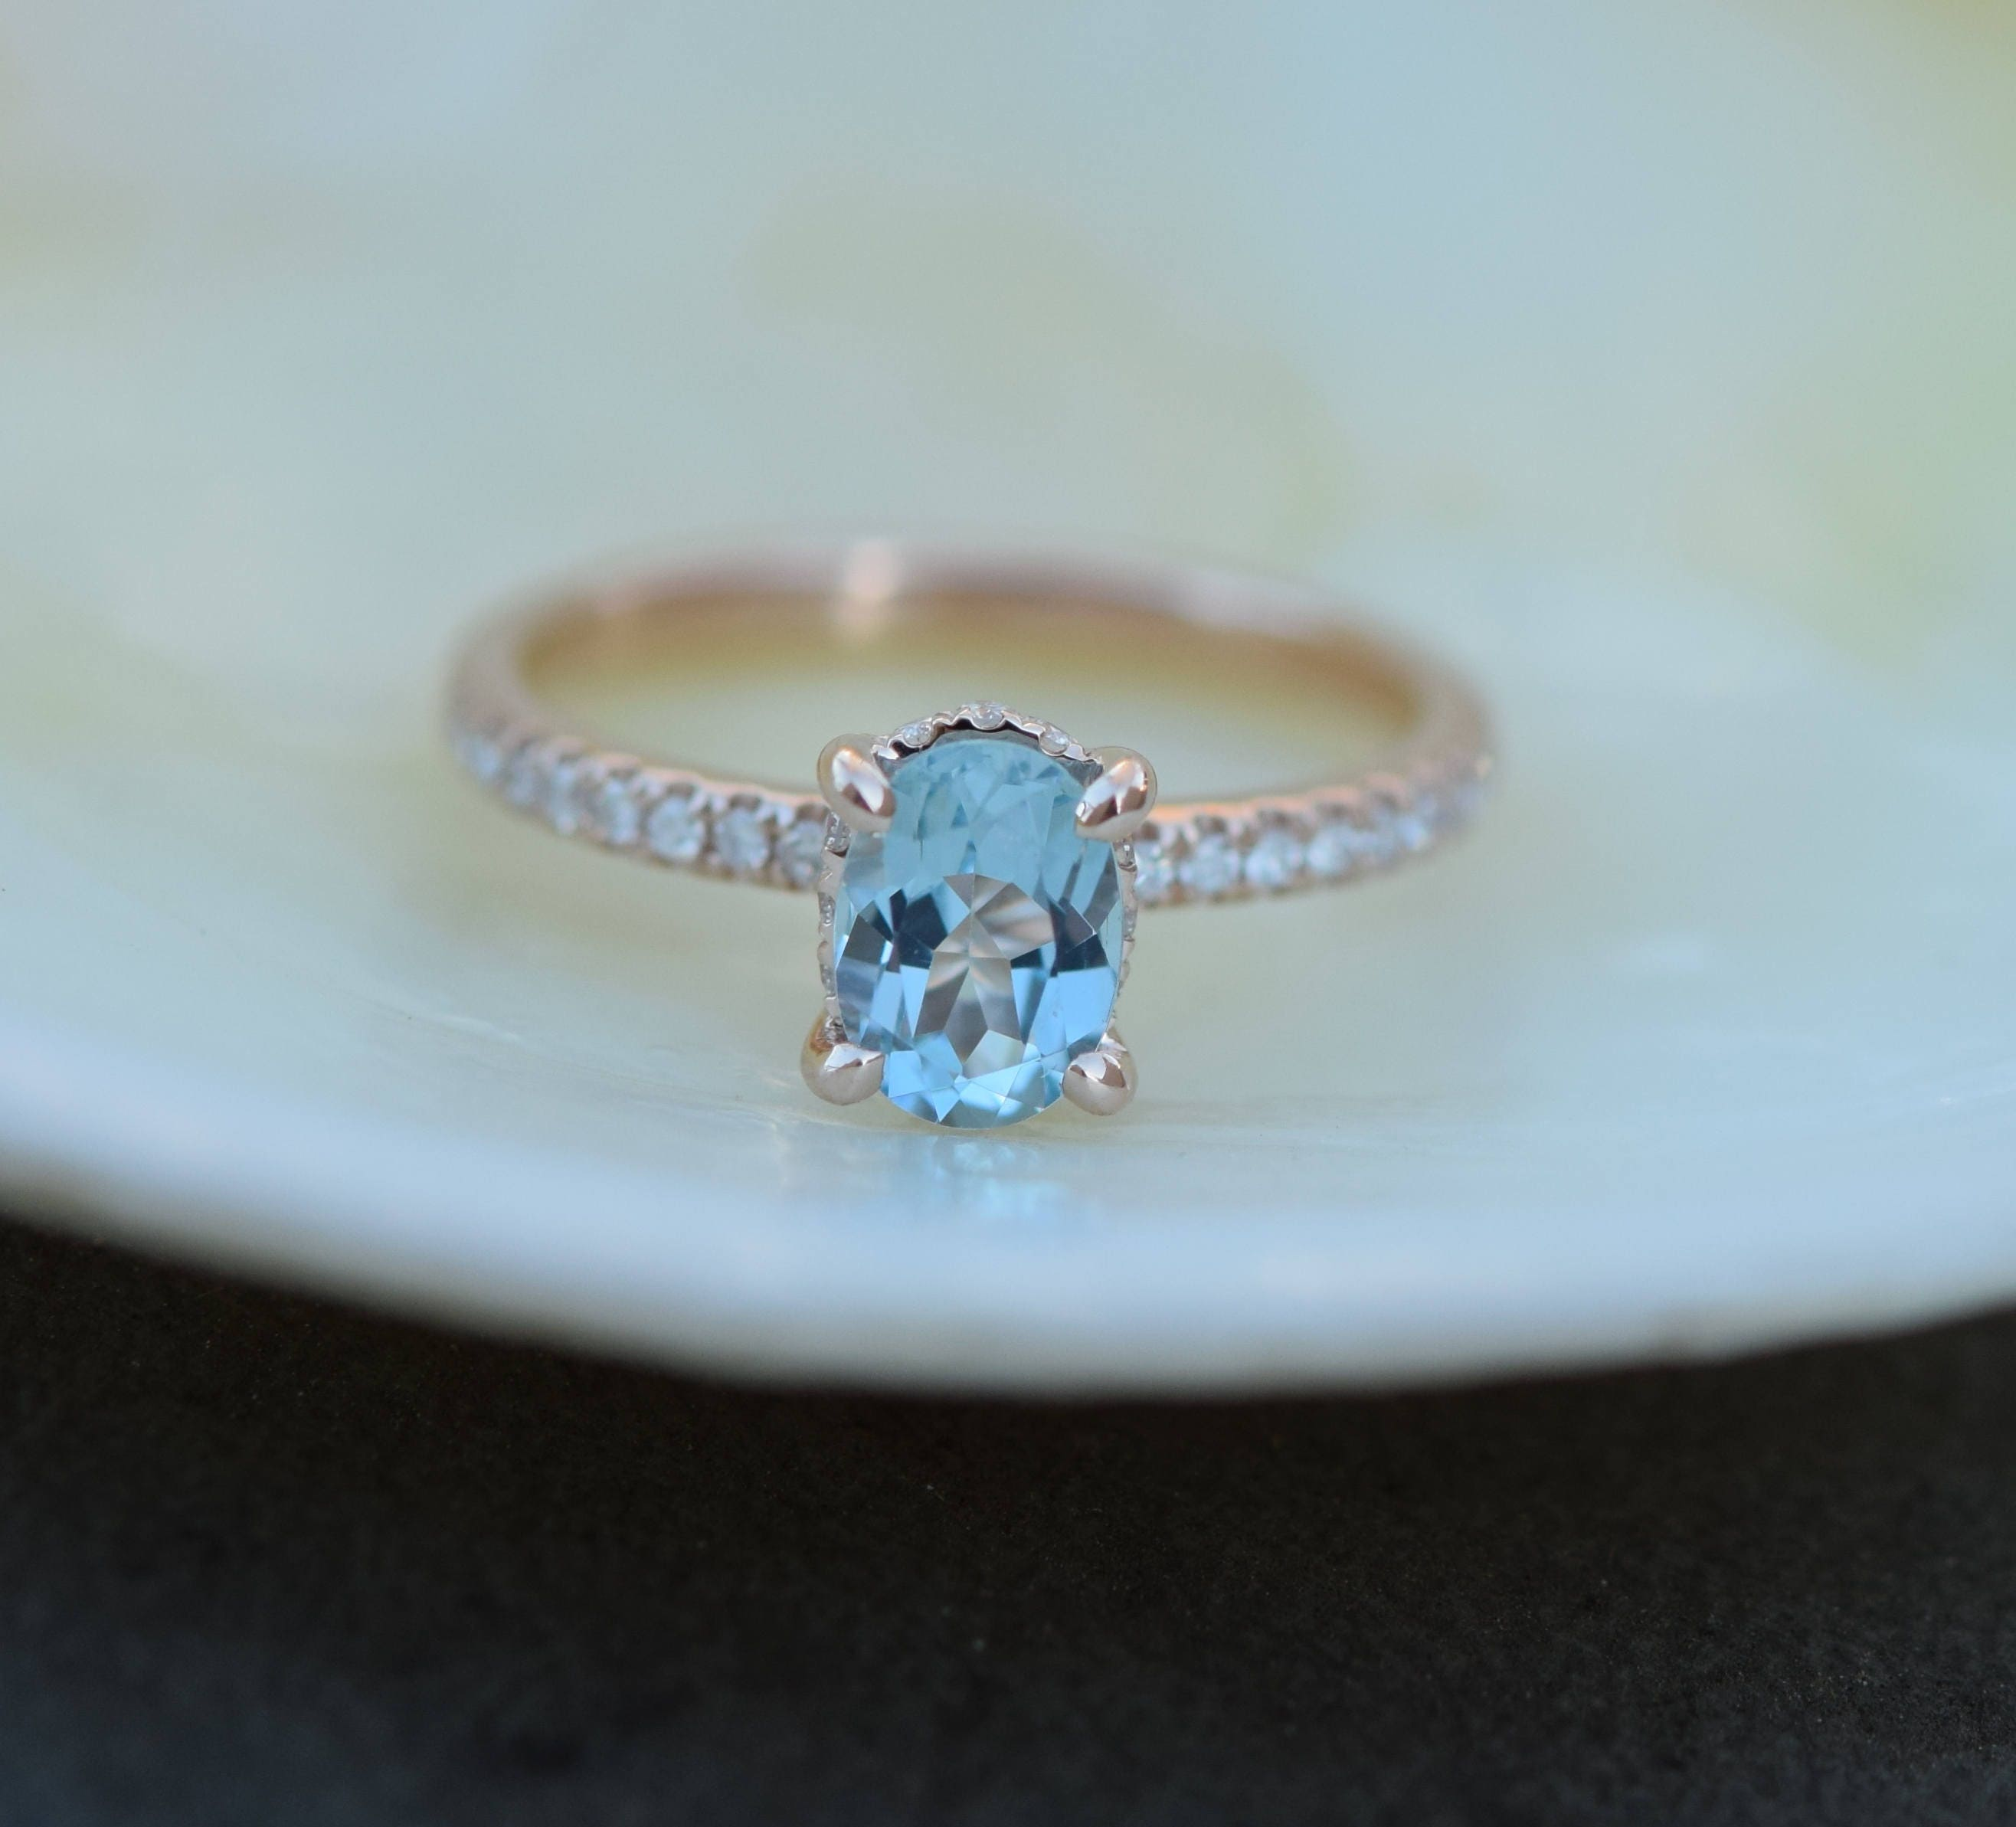 ring gold engagement s sapphire natural item white solitaire real round in gemstoneking blue jewelry accessories women on ct from rings